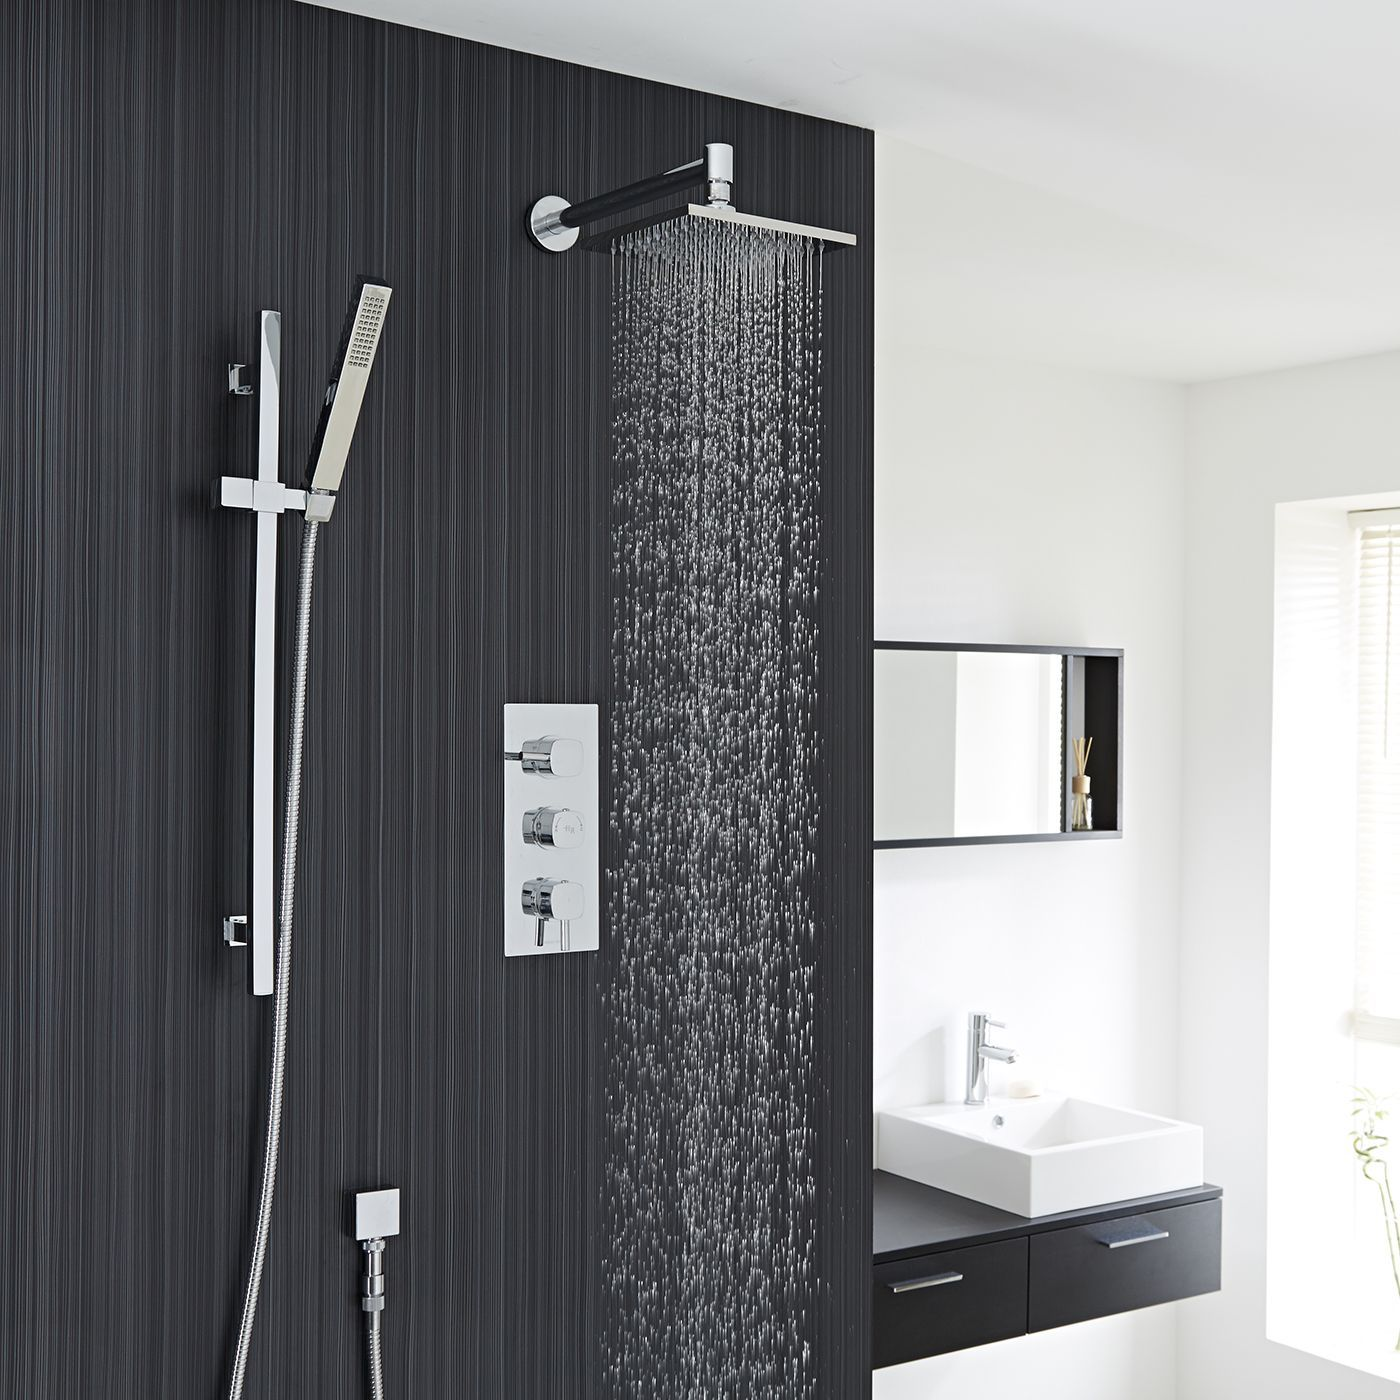 Chrome Square Shower System With Slide Rail Kit Thermostatic Triple Faucet Valve And Overhead Head